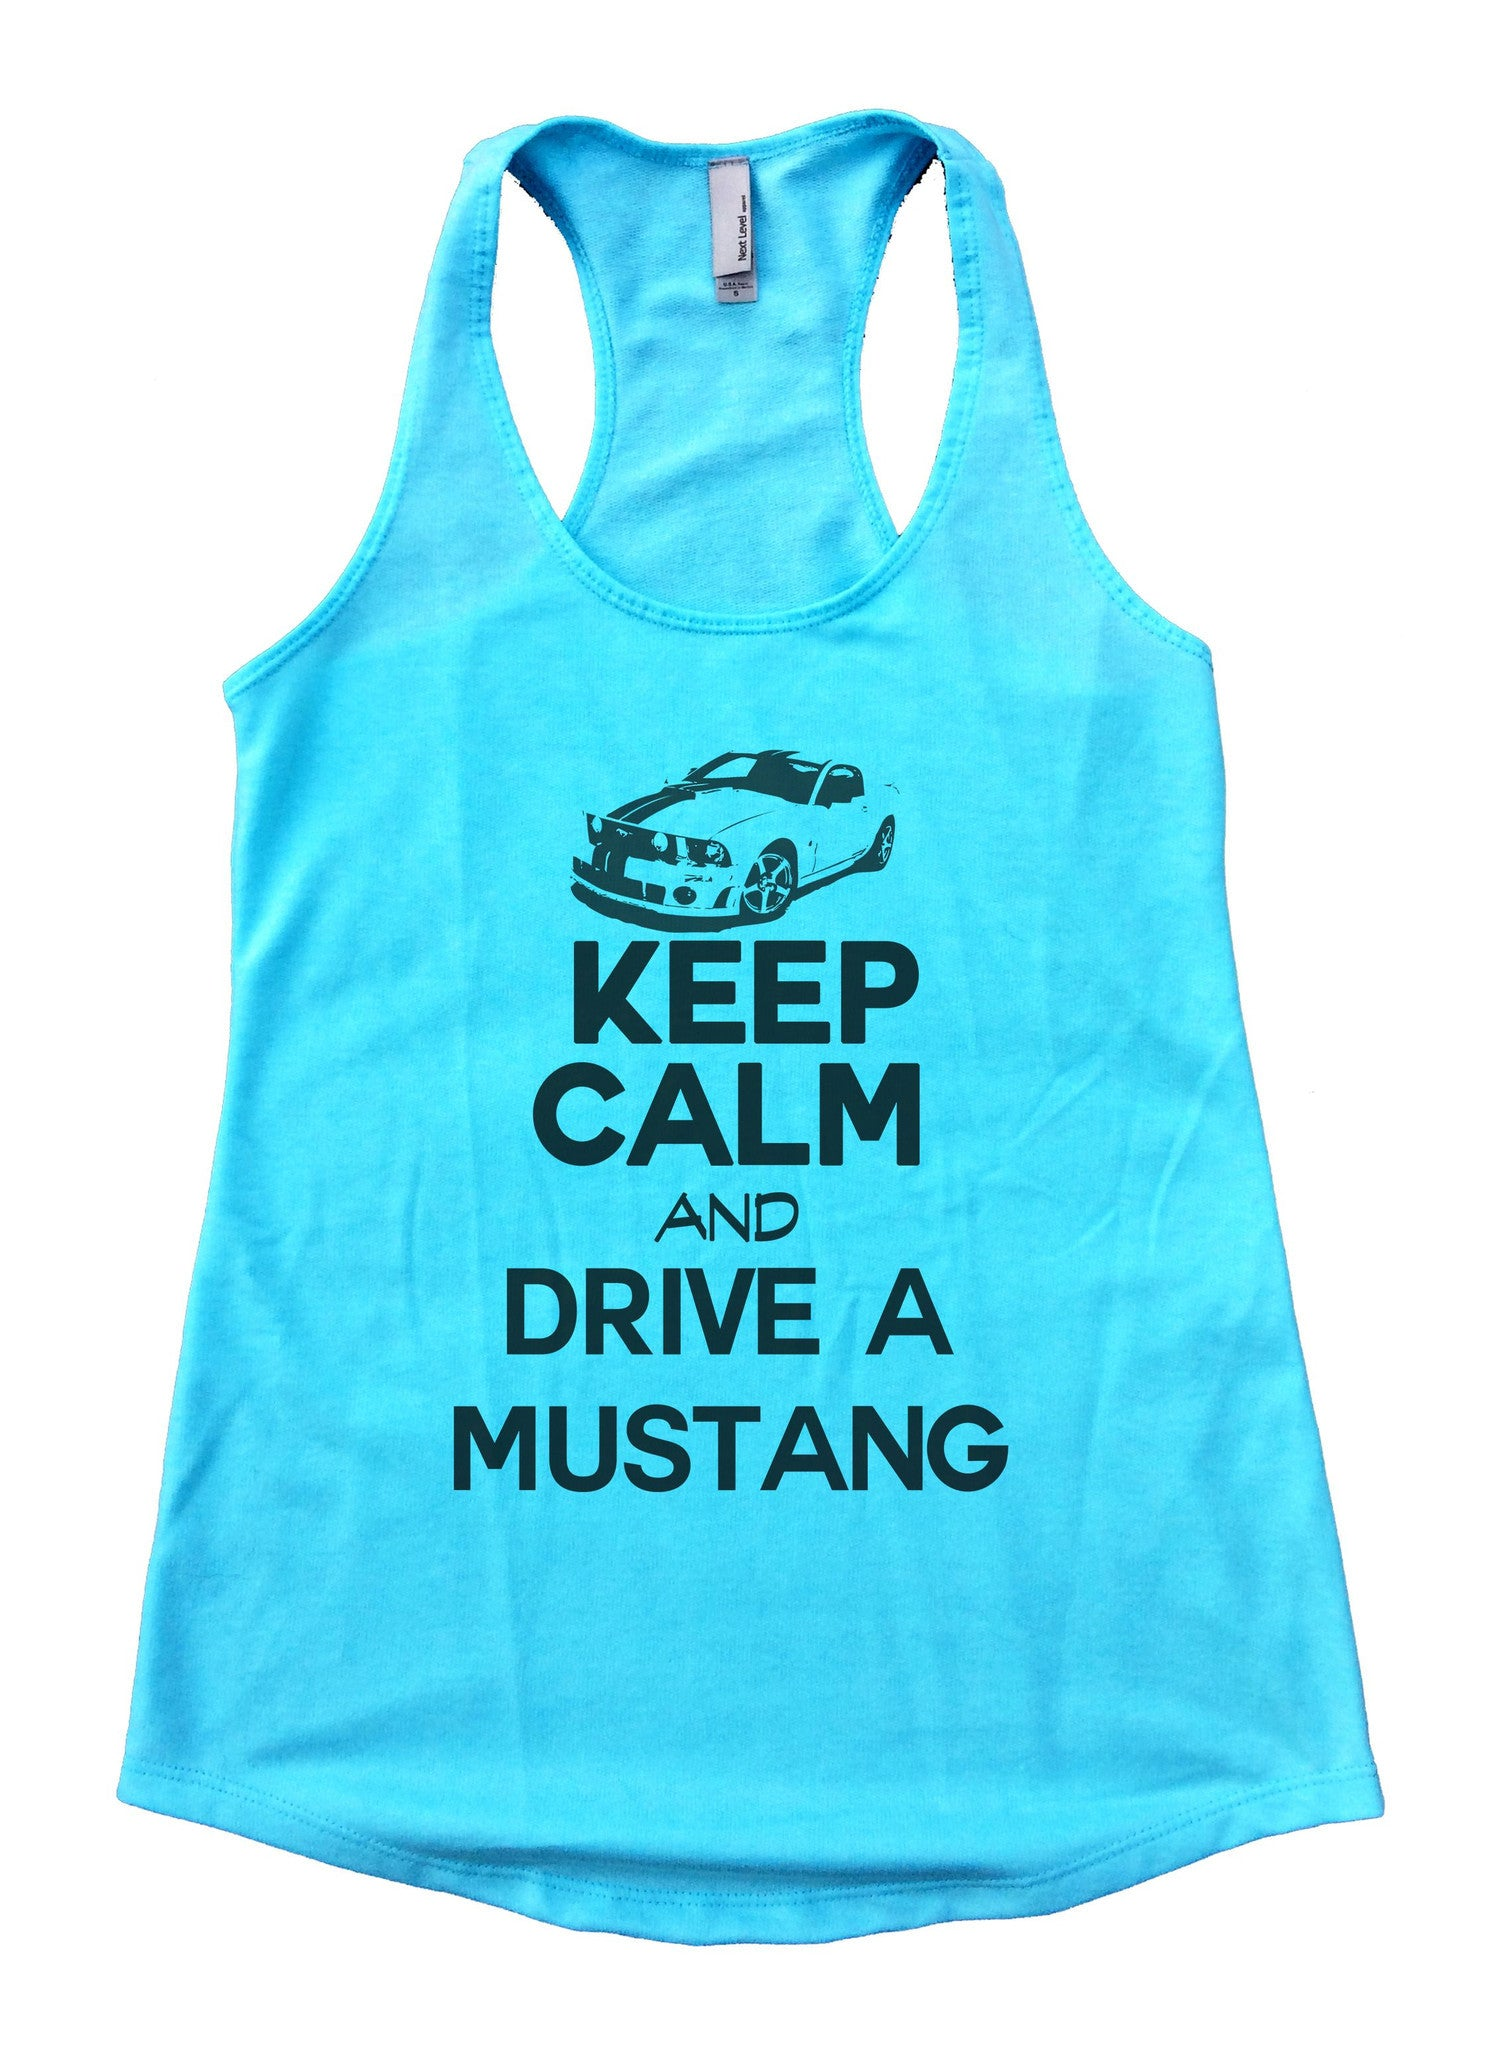 Keep Calm And Drive A Mustang Womens Workout Tank Top 2119 - Funny Shirts Tank Tops Burnouts and Triblends  - 2